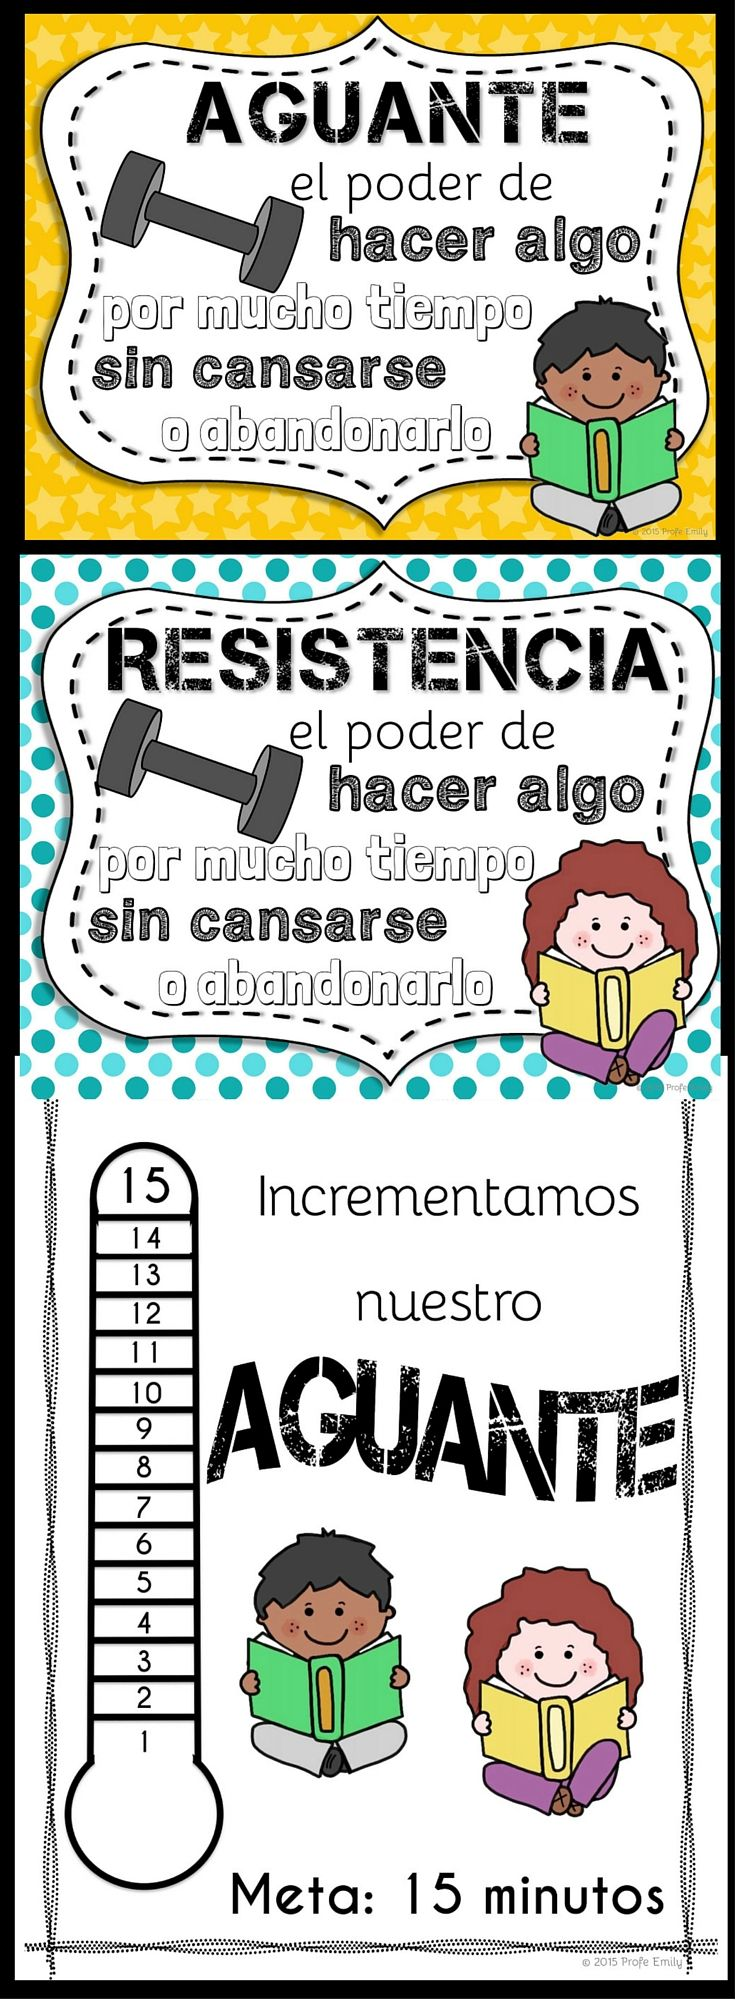 Get ready for the start of the school year with this Spanish stamina mini-kit! Great for Daily 5 or literacy centers in dual language classrooms!